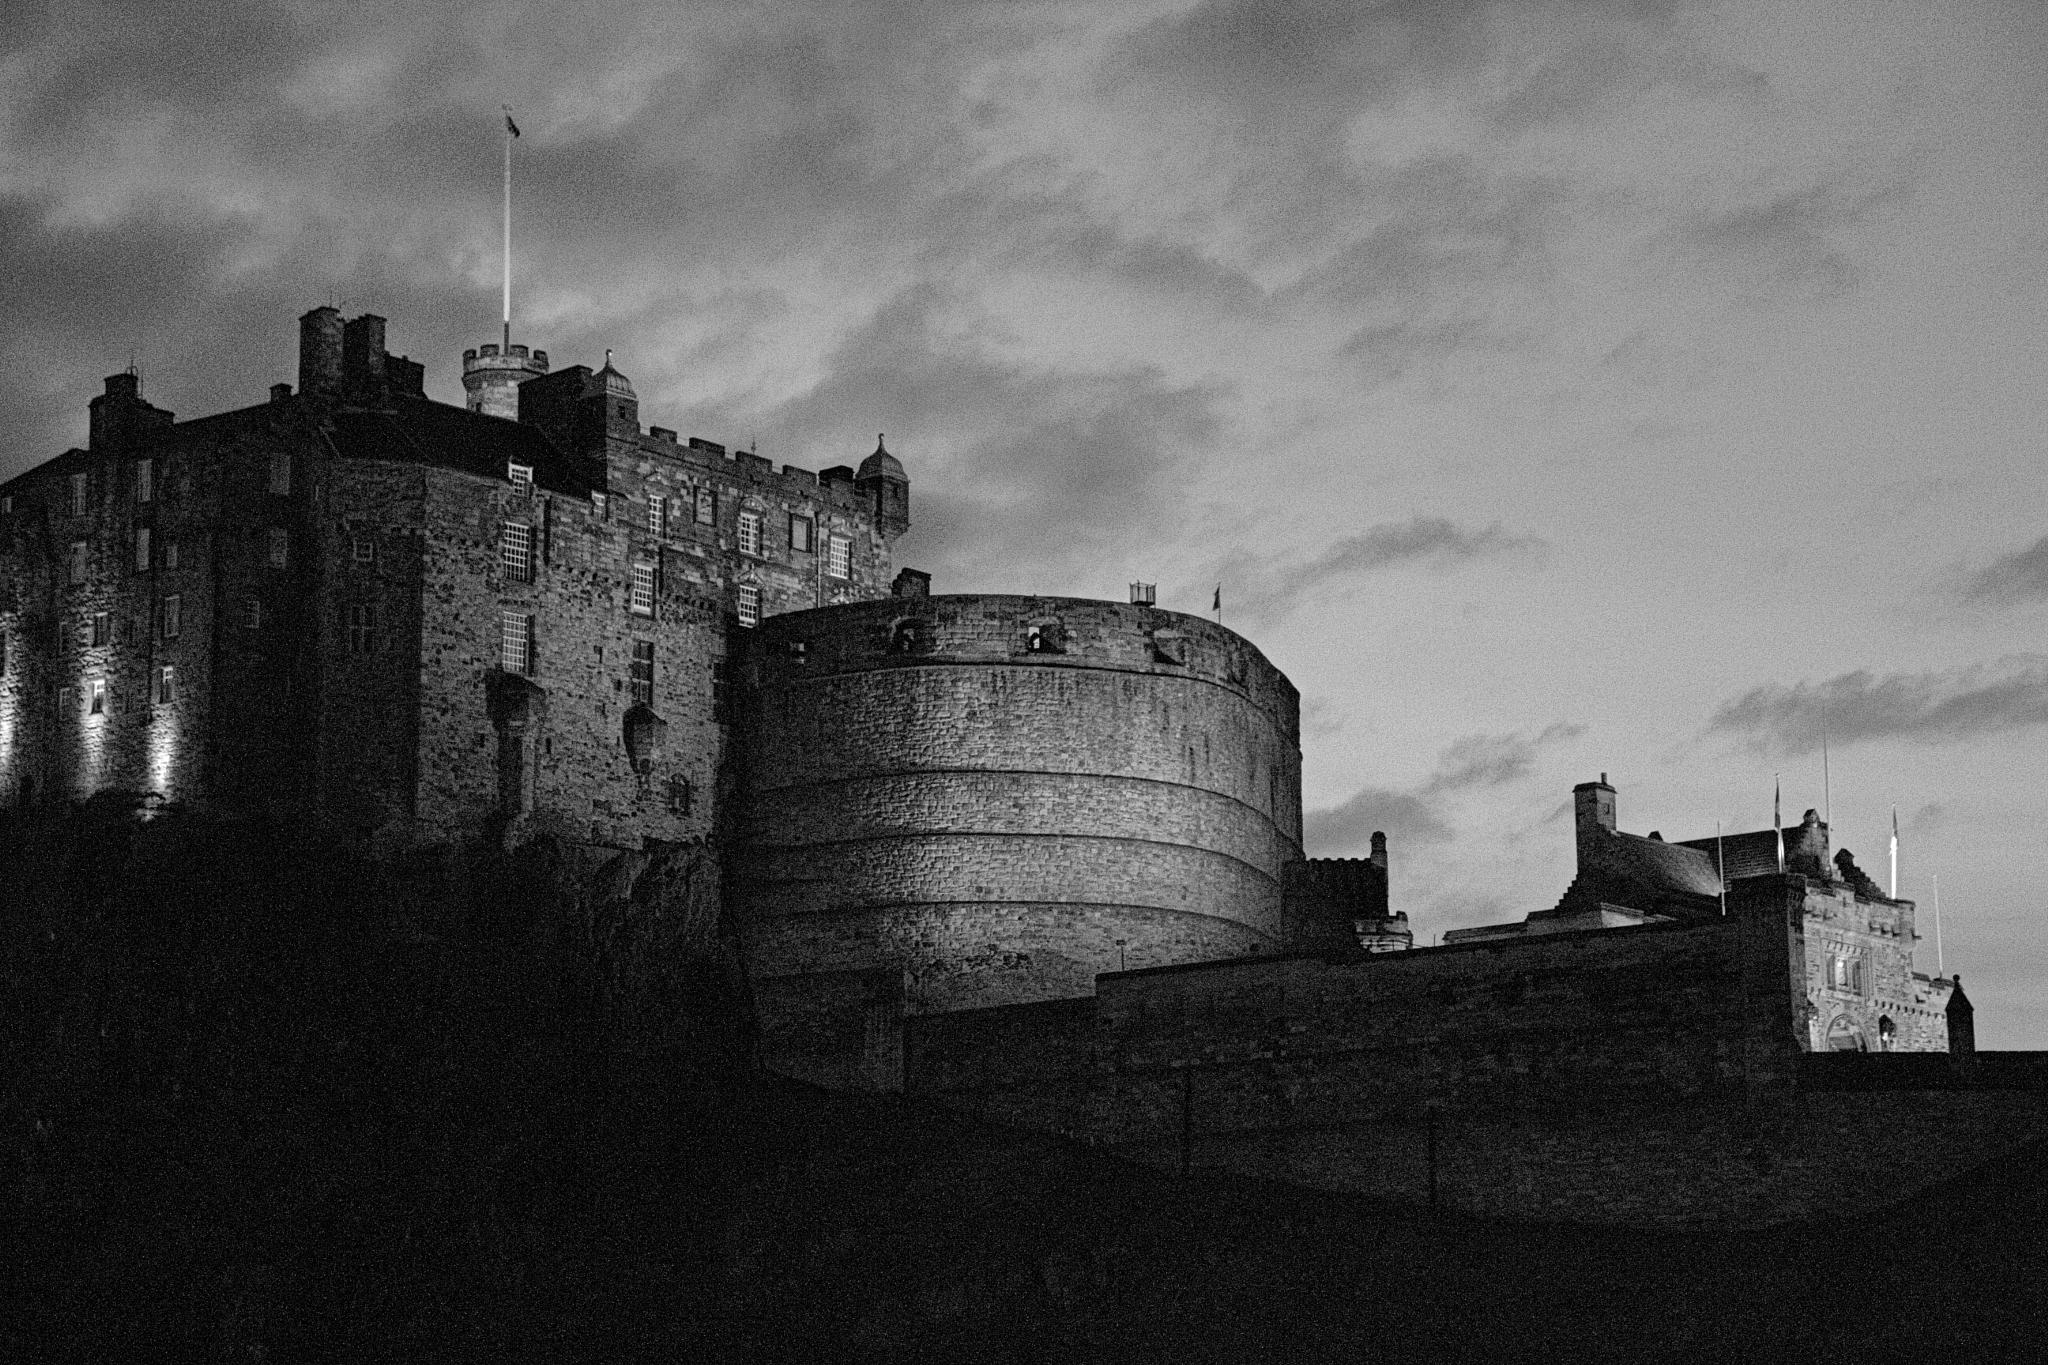 Edinburgh Castle at night black and white version by Andy Gregory Photography